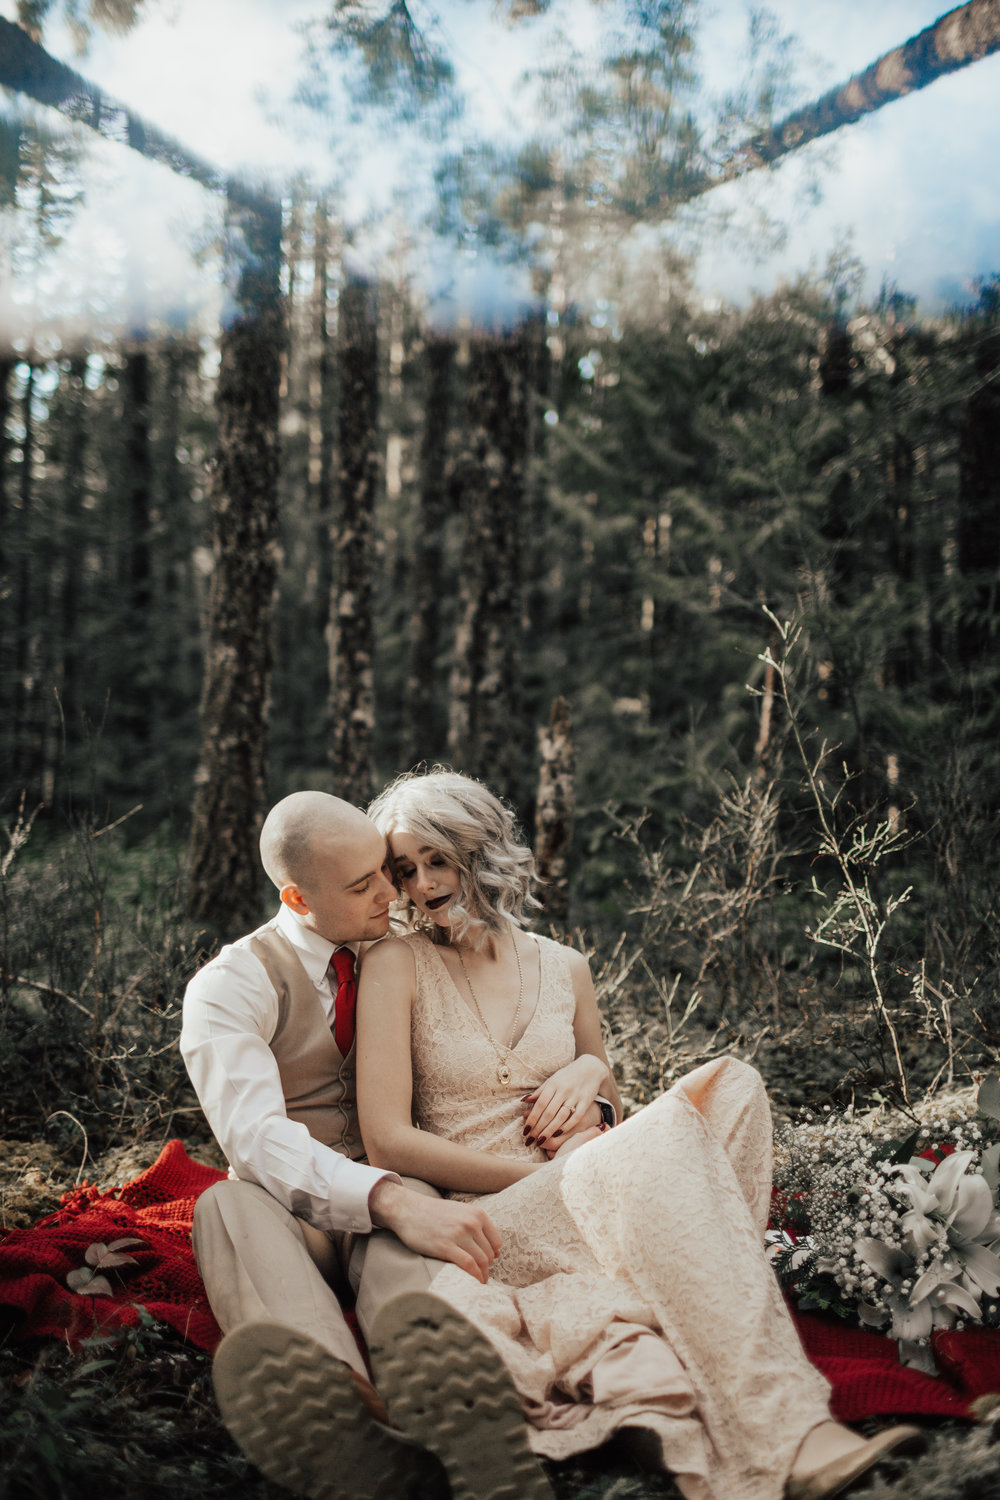 Port Angeles-PNW-Sequim-Portrait-wedding-elopement-photographer-kayladawnphoto-kayla dawn photography-olympic peninsula-portraiture20.jpg